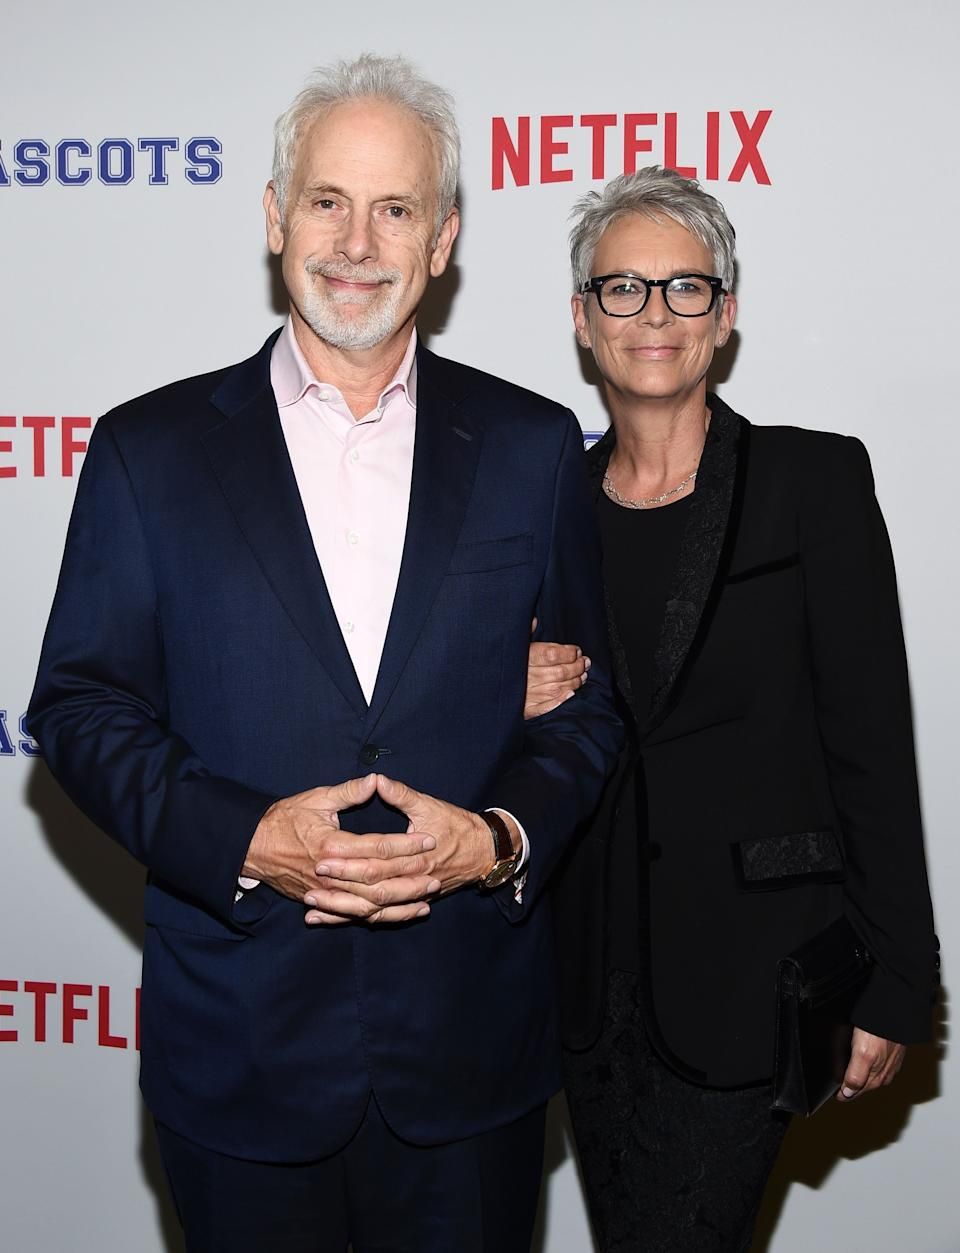 "<a href=""https://www.huffpost.com/entertainment/topic/jamie-lee-curtis"" target=""_blank"" rel=""noopener noreferrer"">Jamie Lee Curtis</a> and mockumentary director Christopher Guest have been married for over three decades. In an interview with <a href=""https://www.theguardian.com/film/2016/oct/11/christopher-guest-on-life-as-a-baron-and-how-wife-jamie-lee-curtis-picked-him-out-of-a-magazine"" target=""_blank"" rel=""noopener noreferrer"">The Guardian in 2016</a>, Guest joked about how his wife ""picked"" him out of a magazine. <br /><br><br><br />""She said to her friend, 'I'm going to marry that guy,'"" <a href=""https://www.theguardian.com/film/2016/oct/11/christopher-guest-on-life-as-a-baron-and-how-wife-jamie-lee-curtis-picked-him-out-of-a-magazine"" target=""_blank"" rel=""noopener noreferrer"">he said.</a> ""We still have that original photo hanging up at the house."""